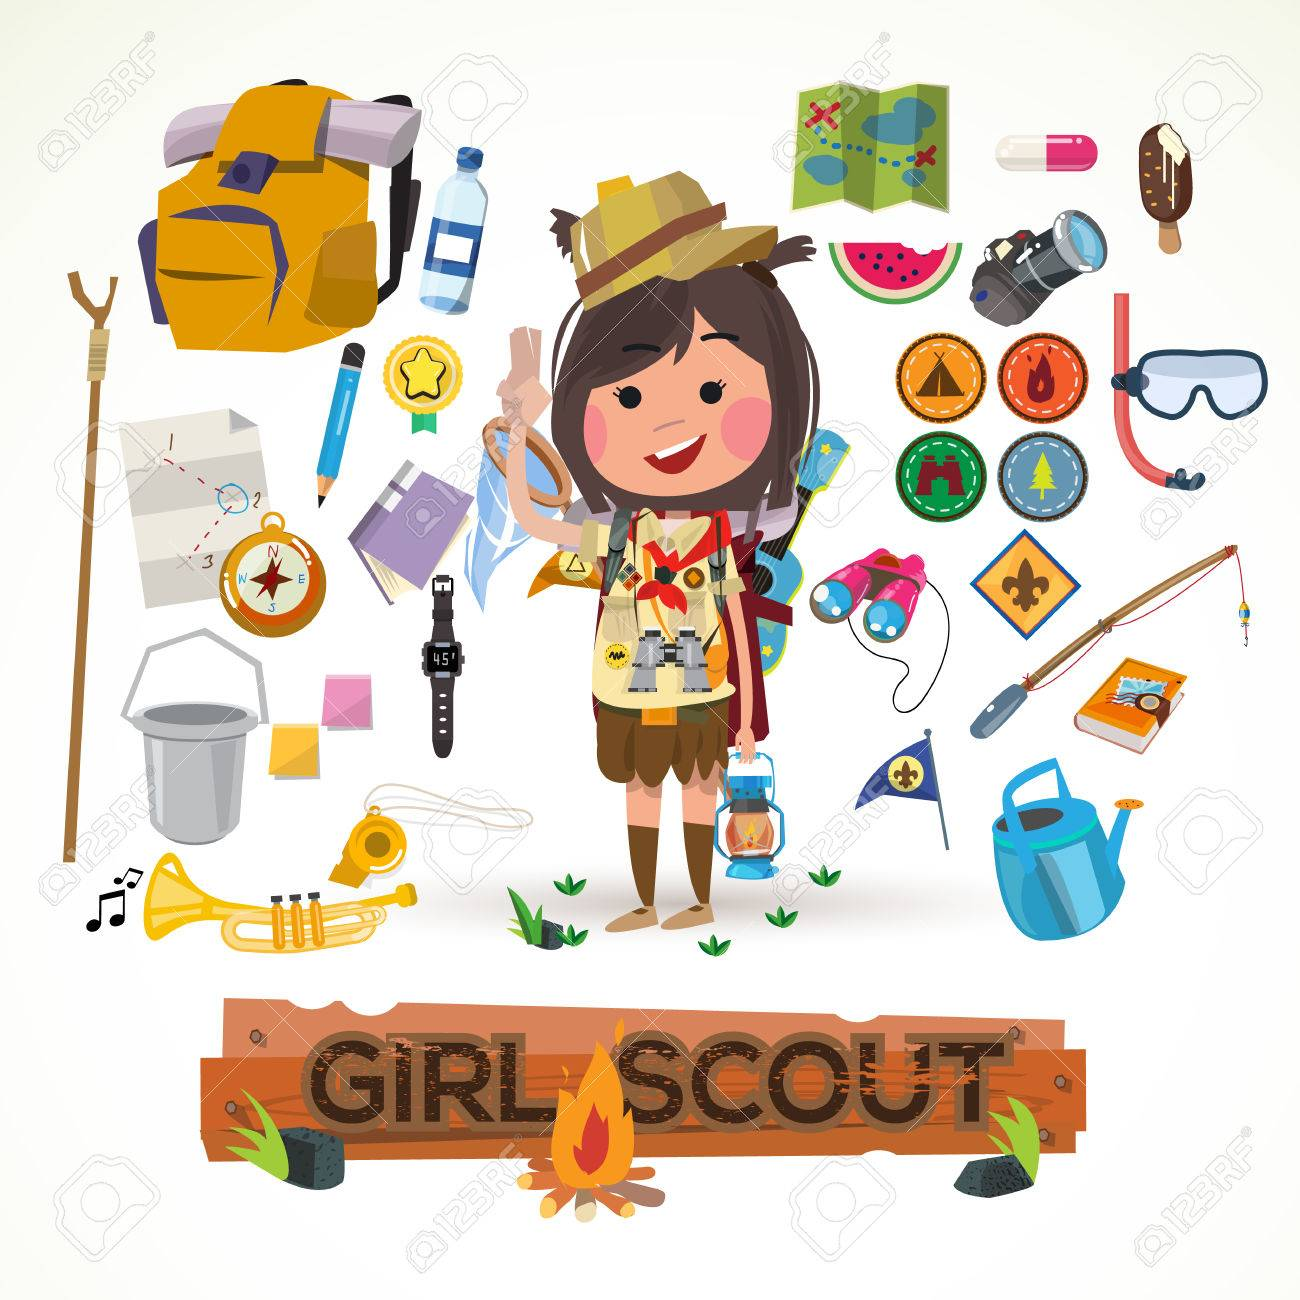 Girl Scout Character With Camping Equipment Concept